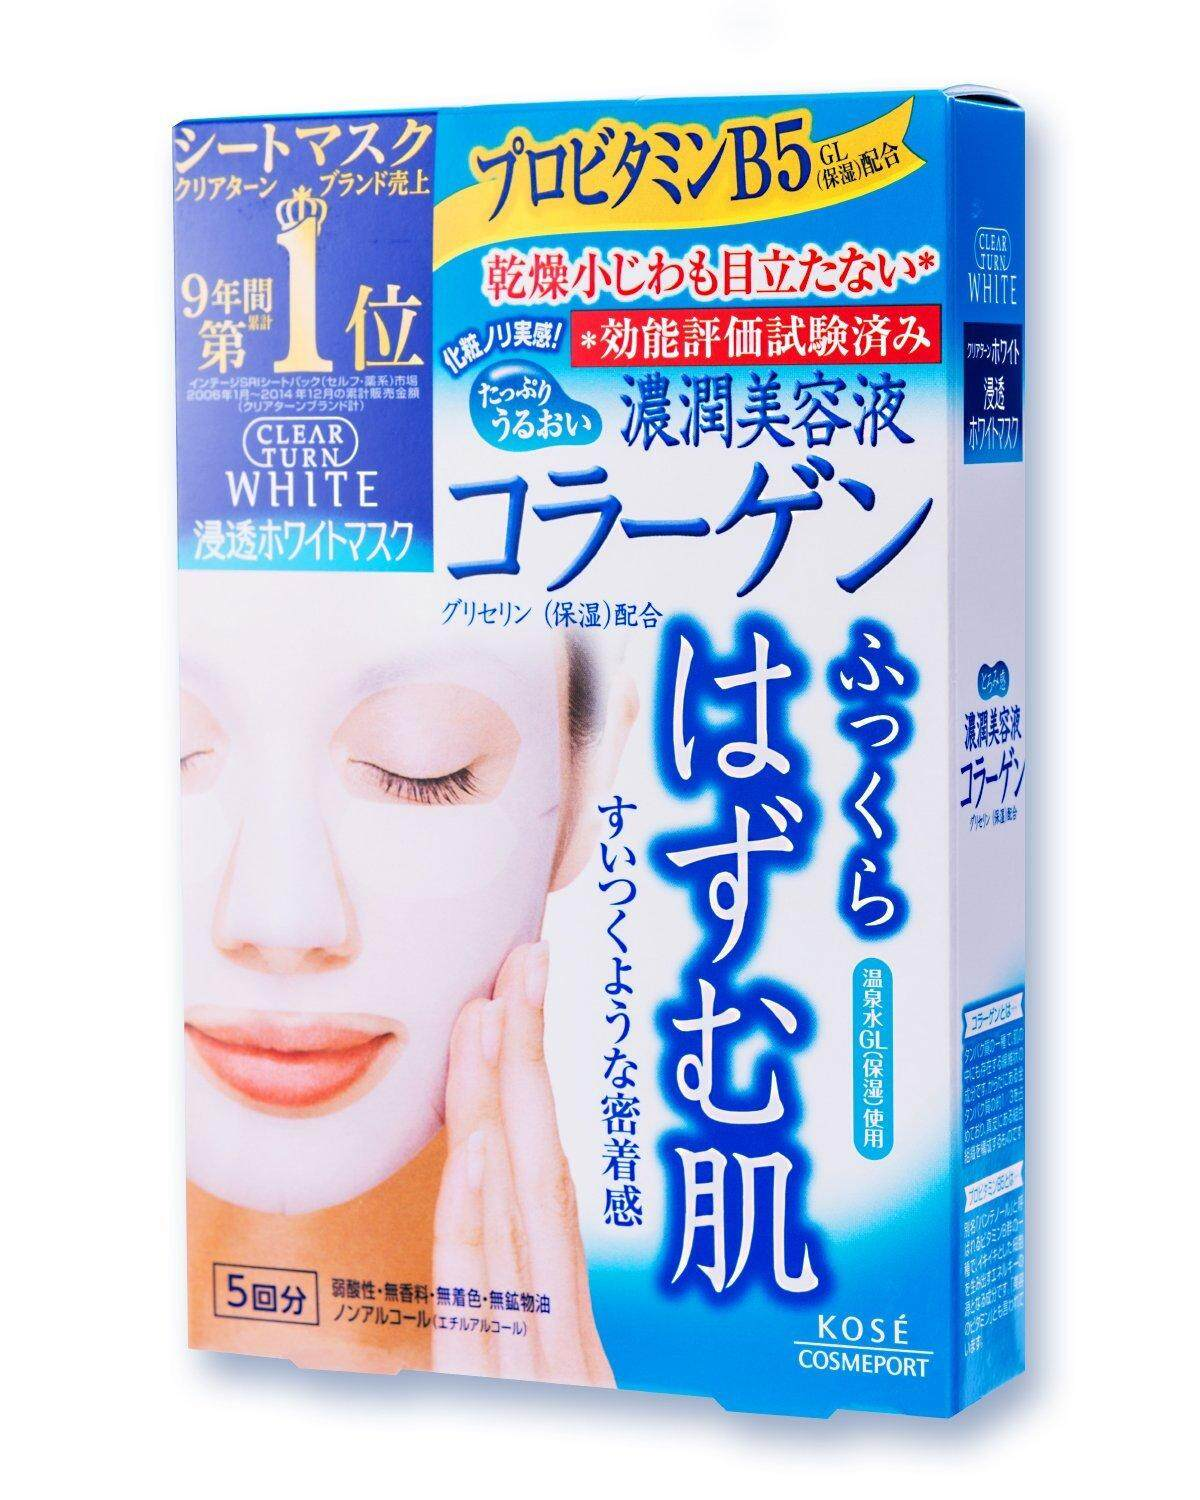 [Shipped From Japan] Clear Turn_White Mask_Vitamin C  Hyaluronic Acid  Collagen 3 Boxes 15Pcs /Clear Turn_C     3  15